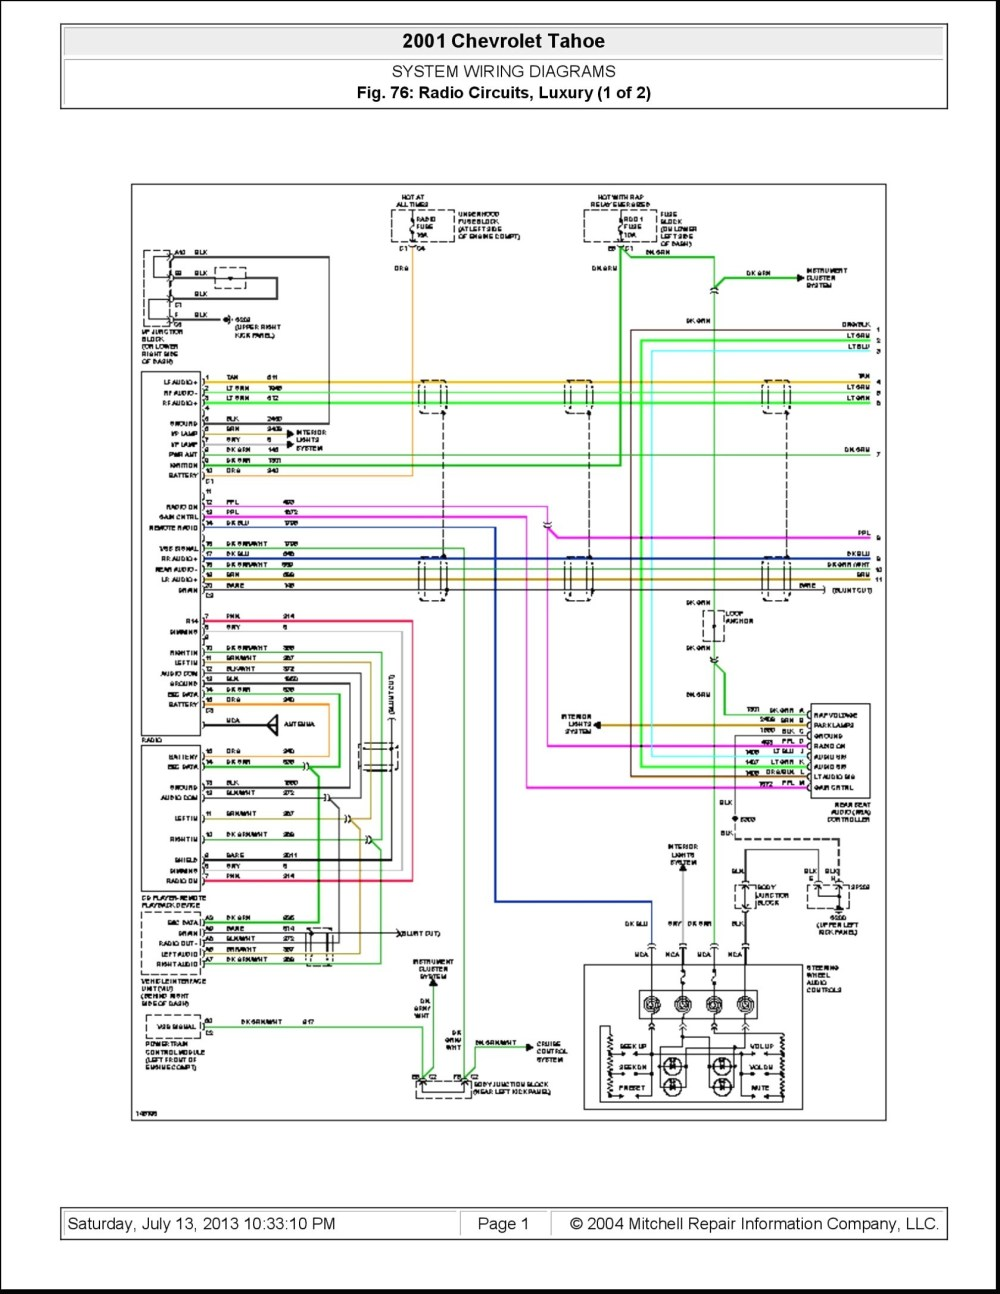 medium resolution of 95 camaro radio wiring diagram wiring diagram centre amp wiring harness camaro